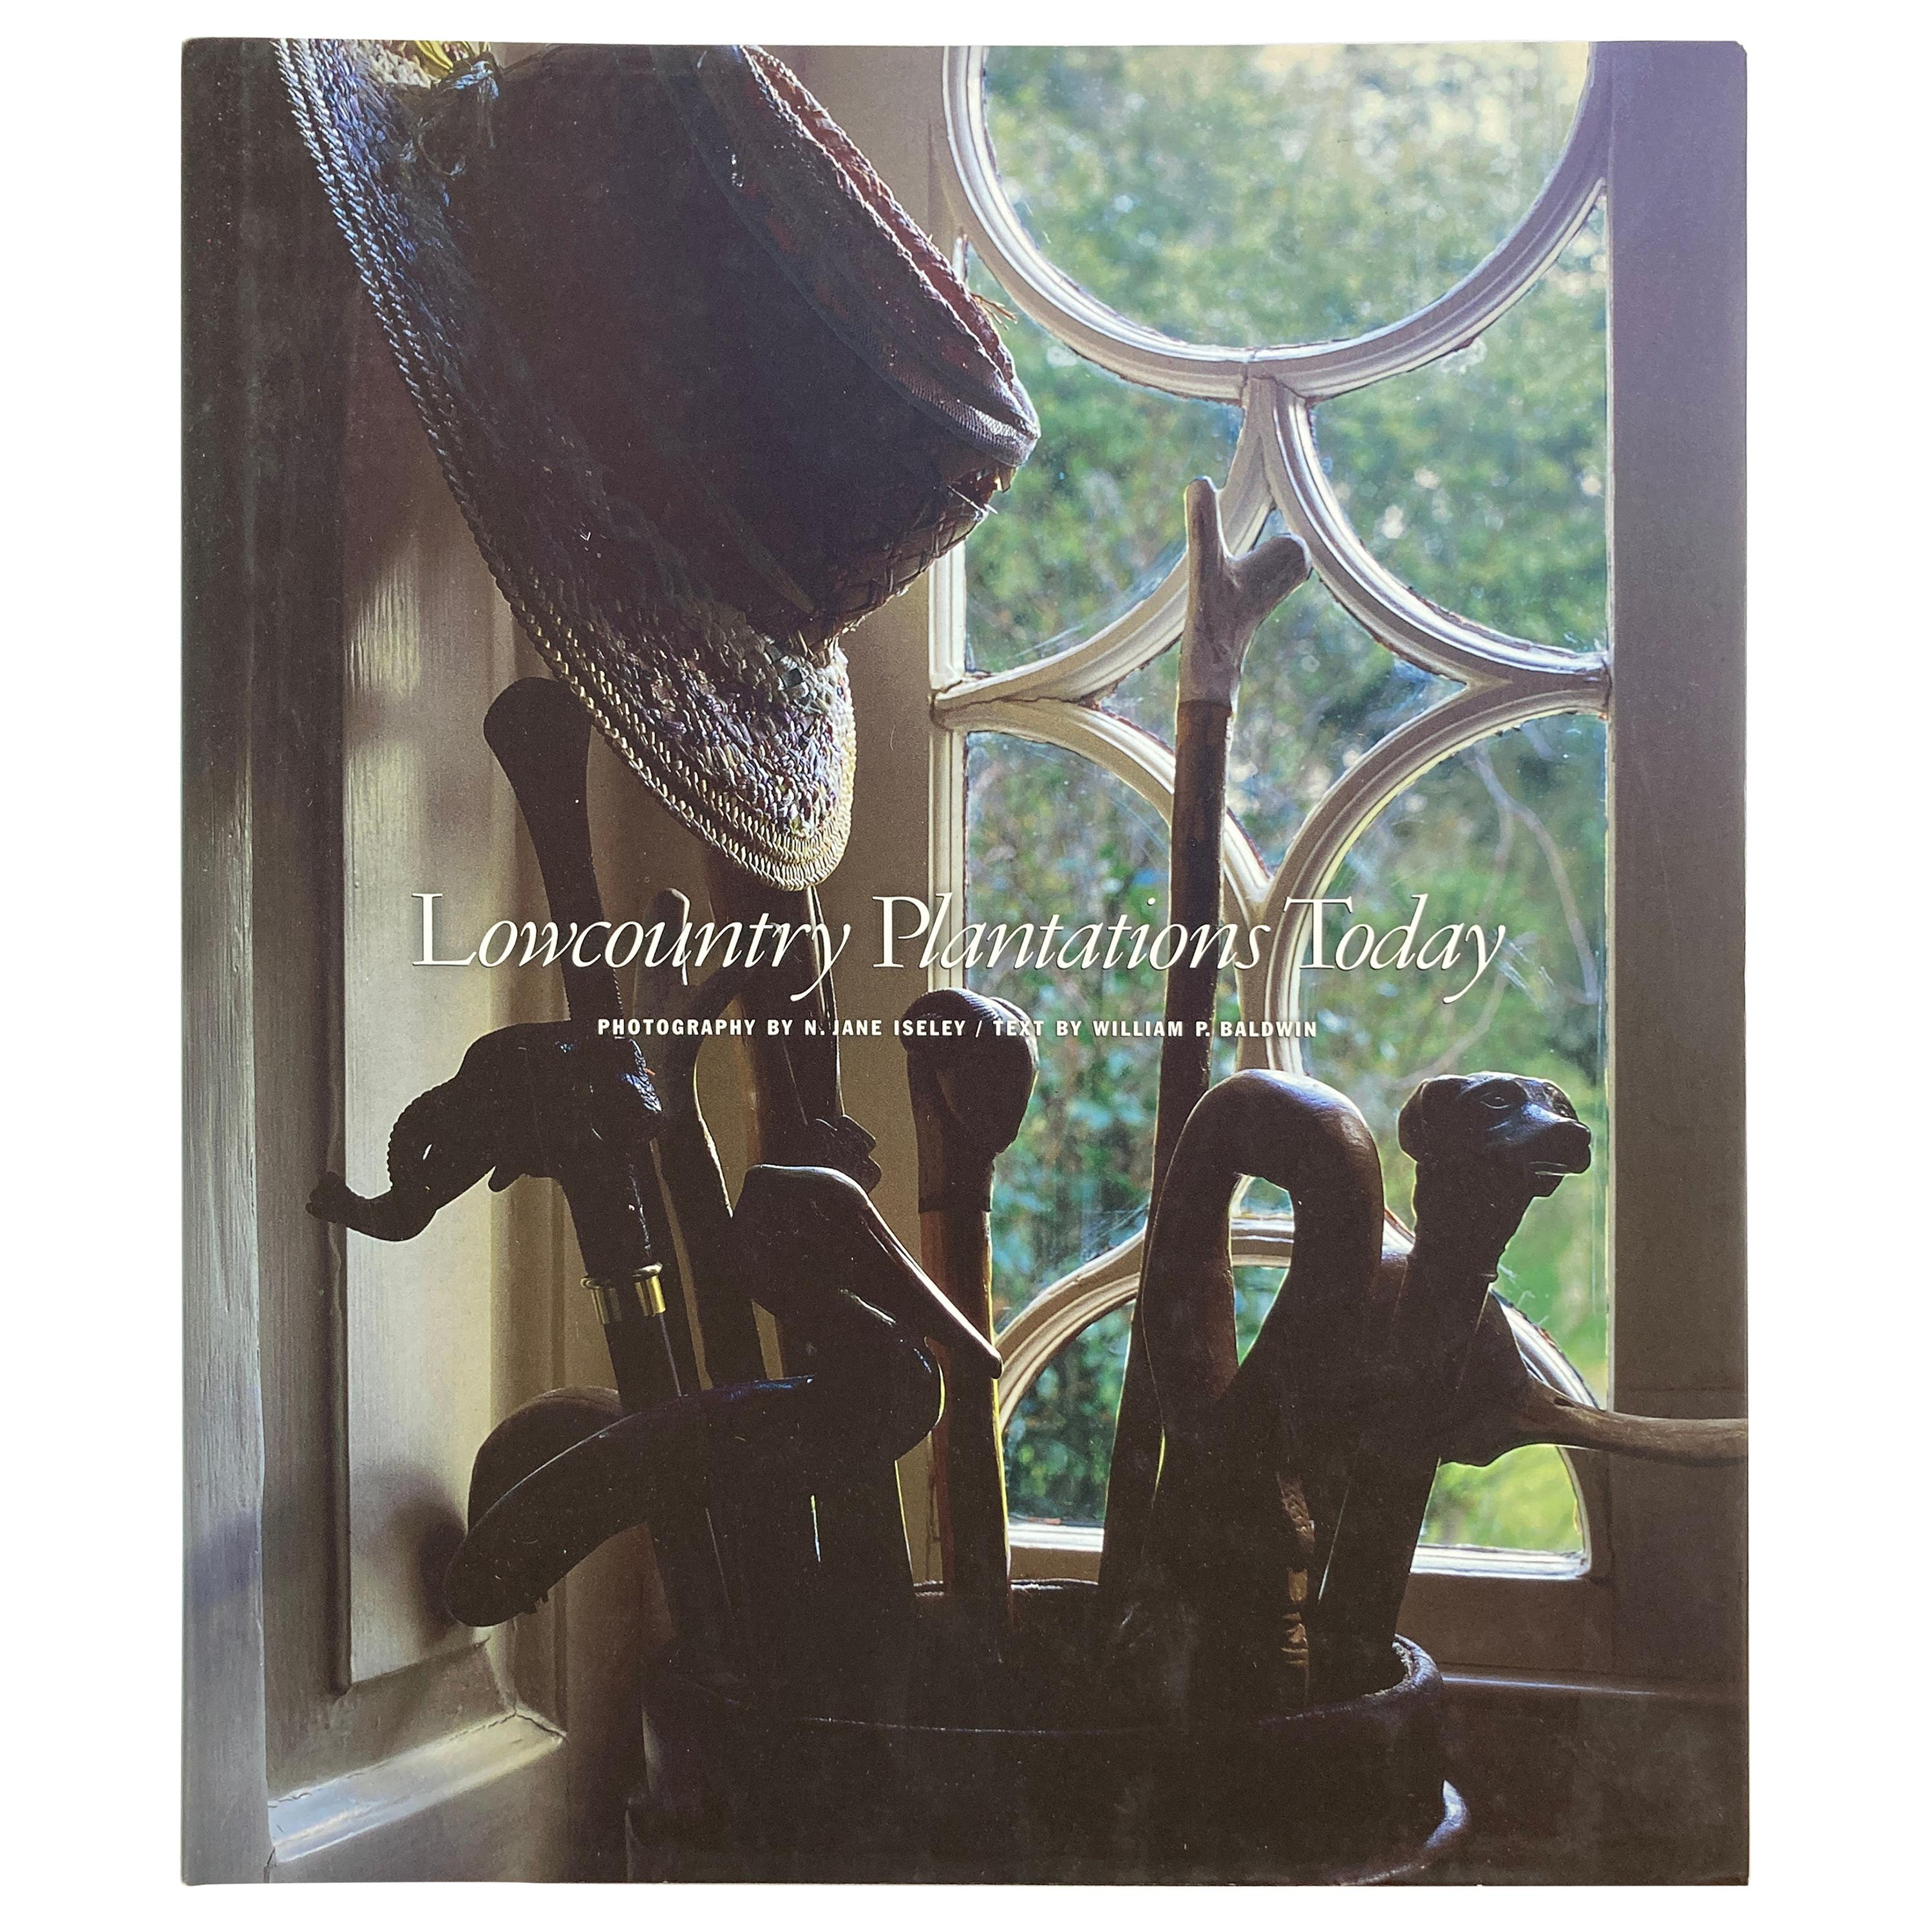 Lowcountry Plantations Today Iseley, N. Jane, Baldwin, William P. Hardcover Book